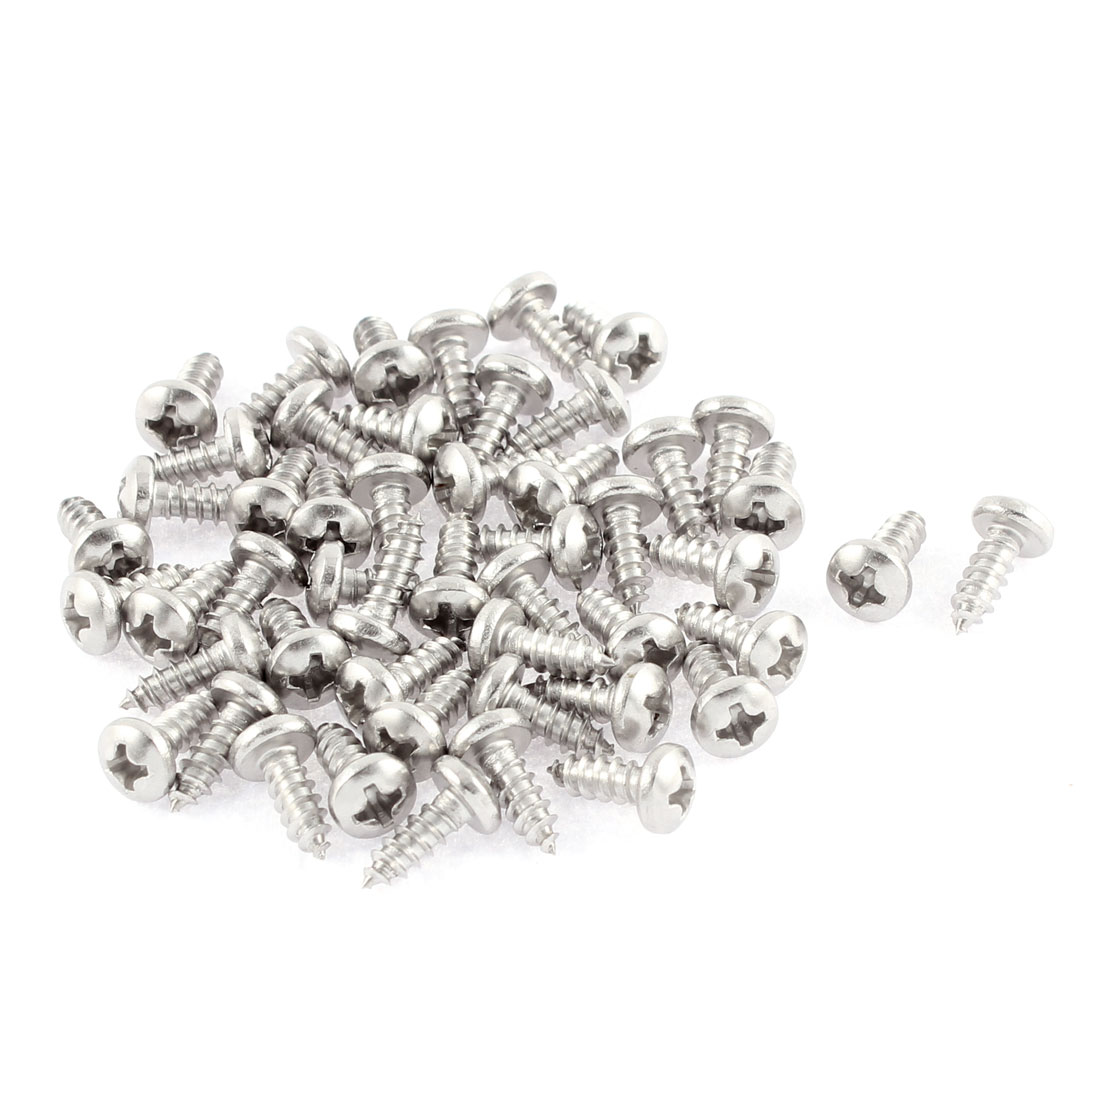 50 Pcs 3.5mmx9.5mm Stainless Steel Phillips Round Head Sheet Self Tapping Screws